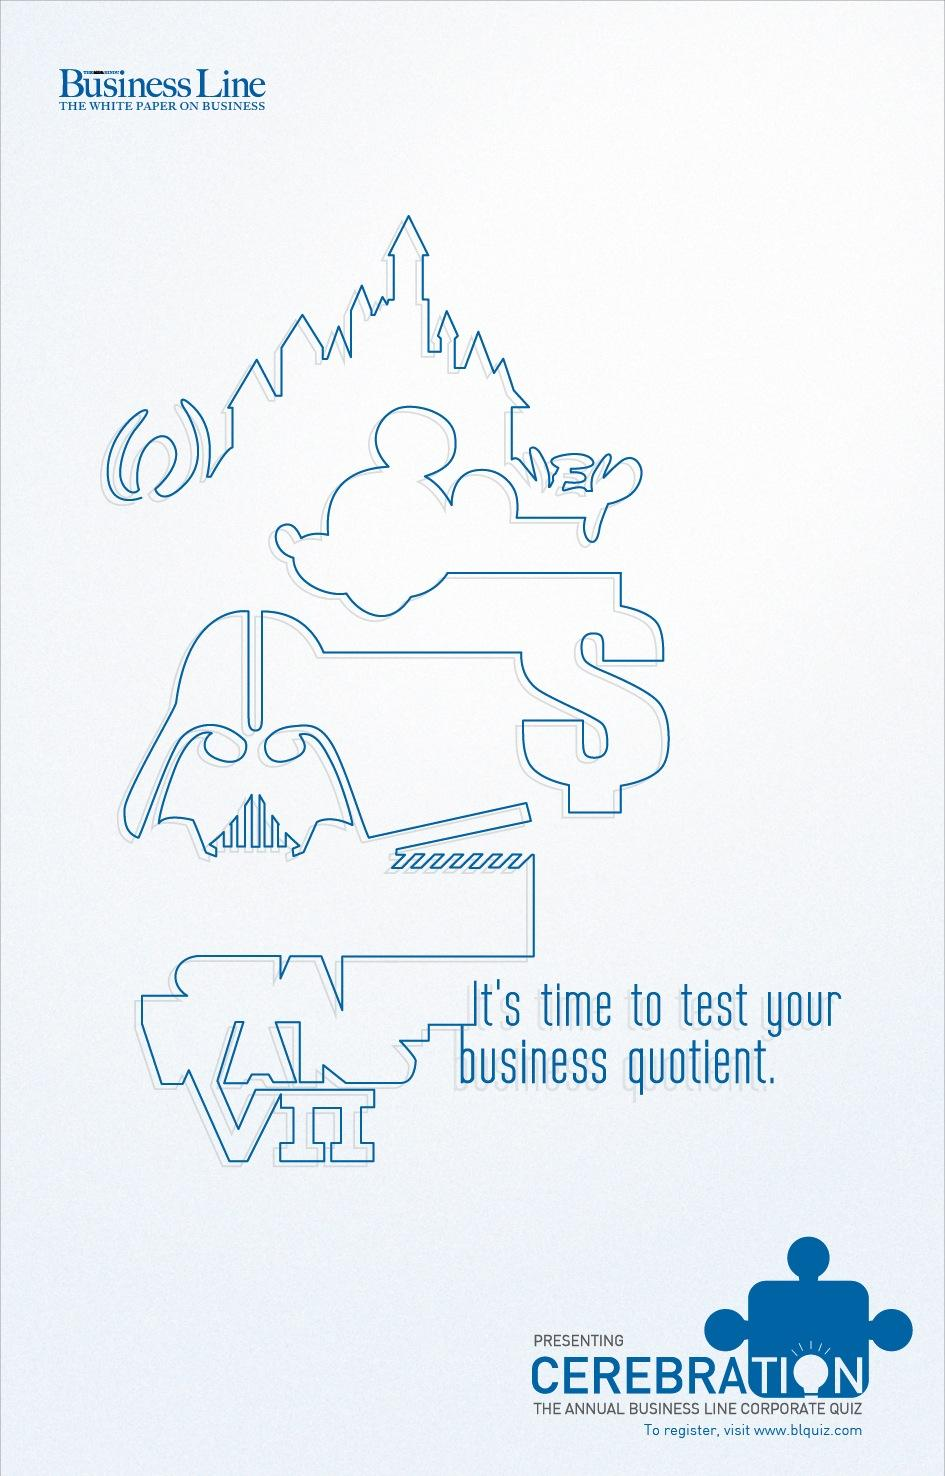 Business Line Print Ad -  Test, 1